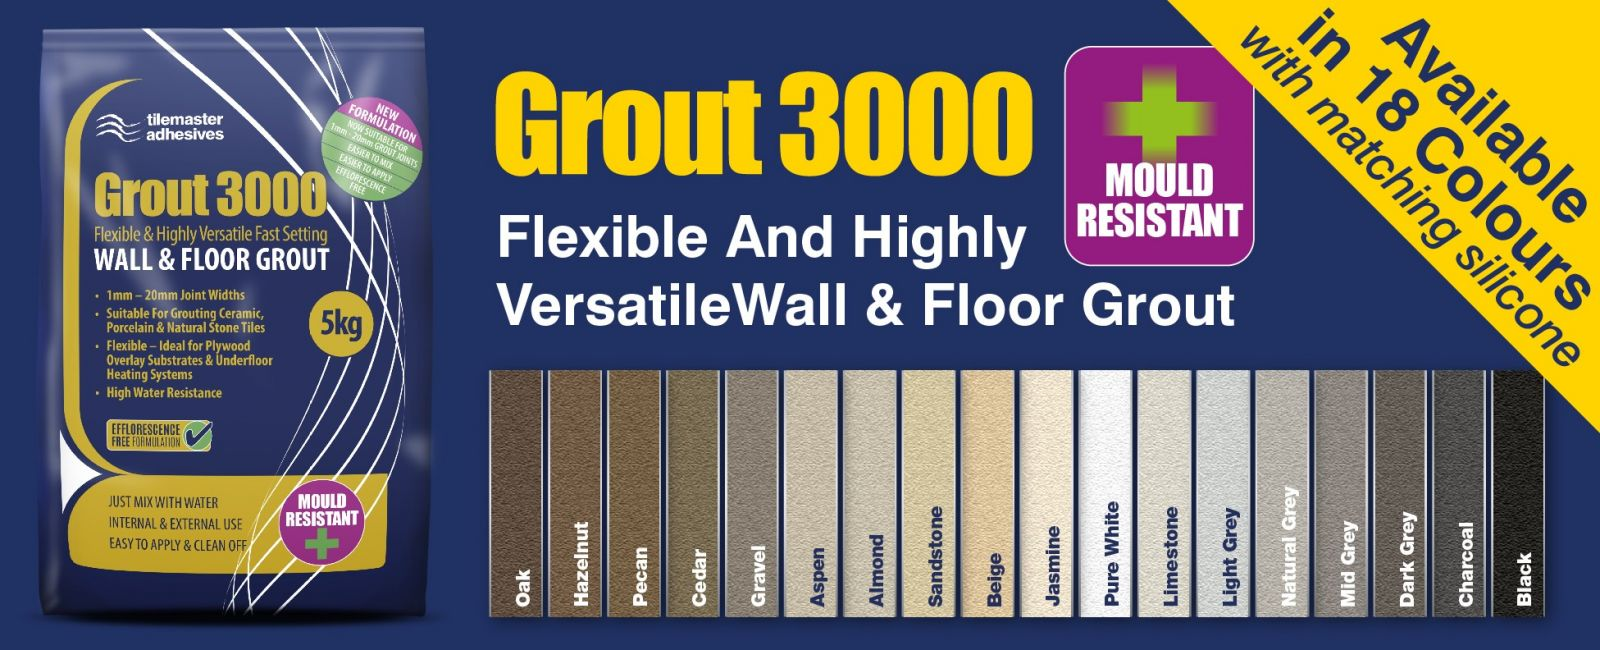 Tilemaster Adhesives' introduces new revamped Grout 3000 range